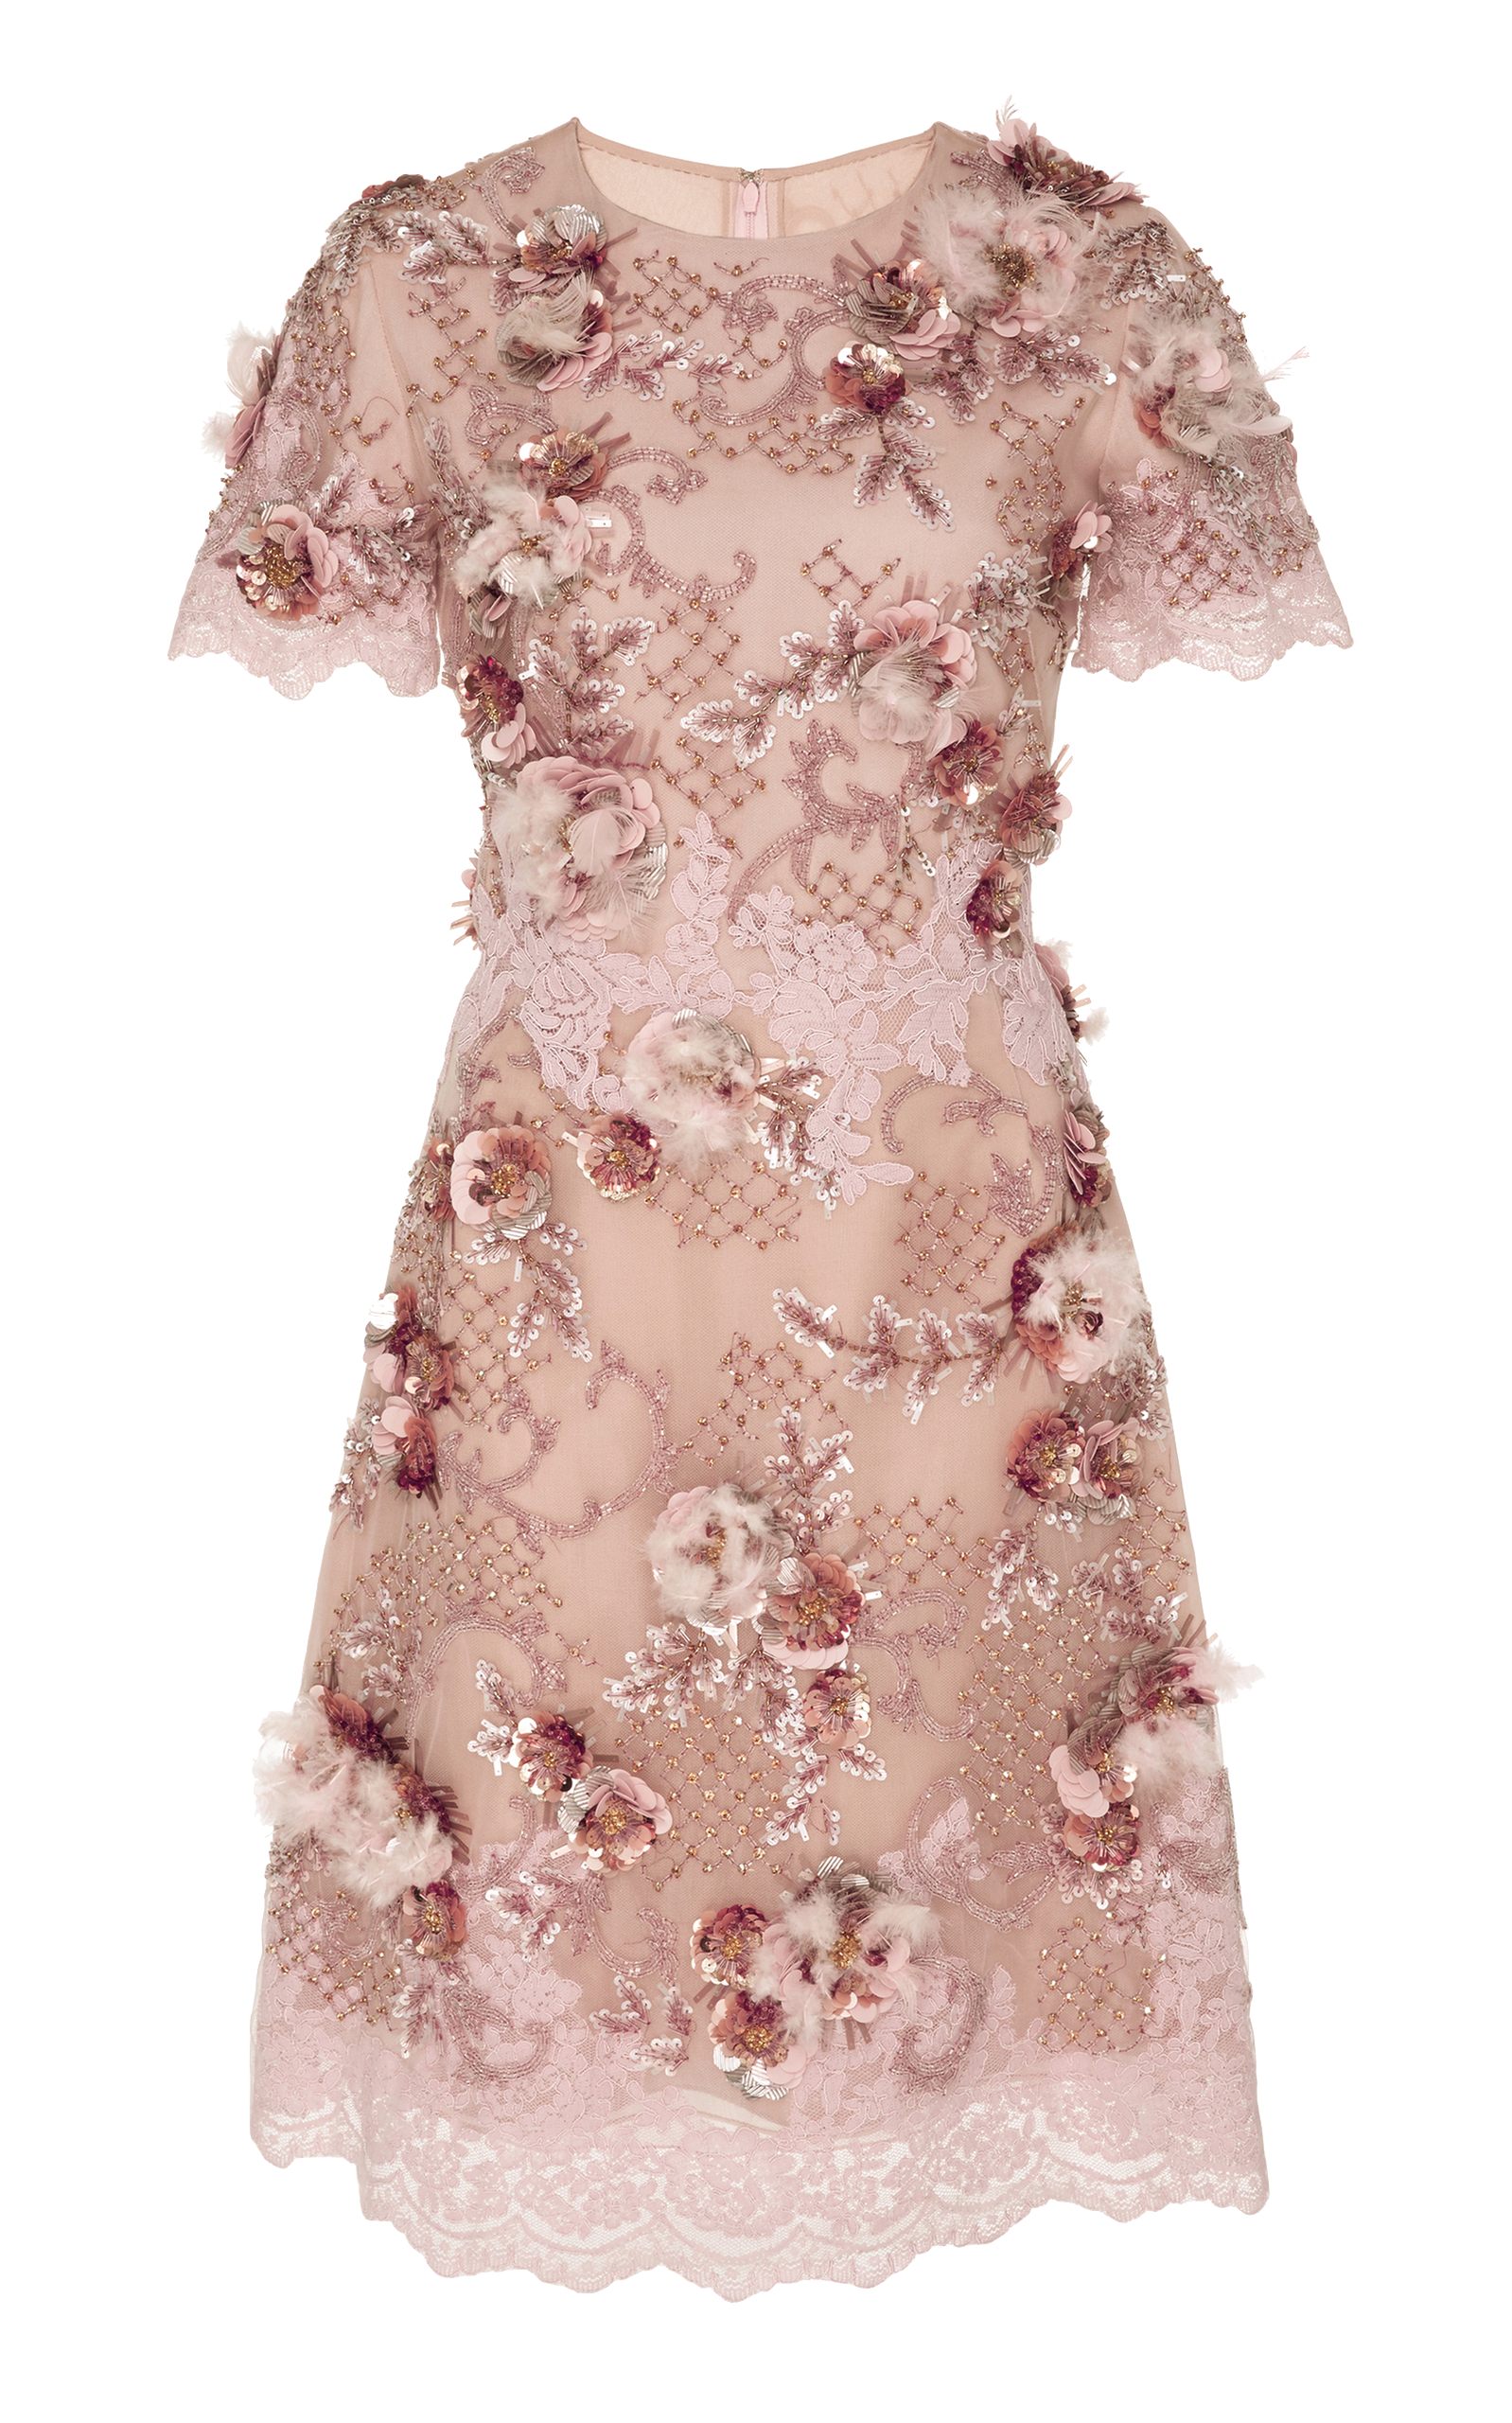 large_marchesa-pink-floral-embellished-cocktail-dress.png